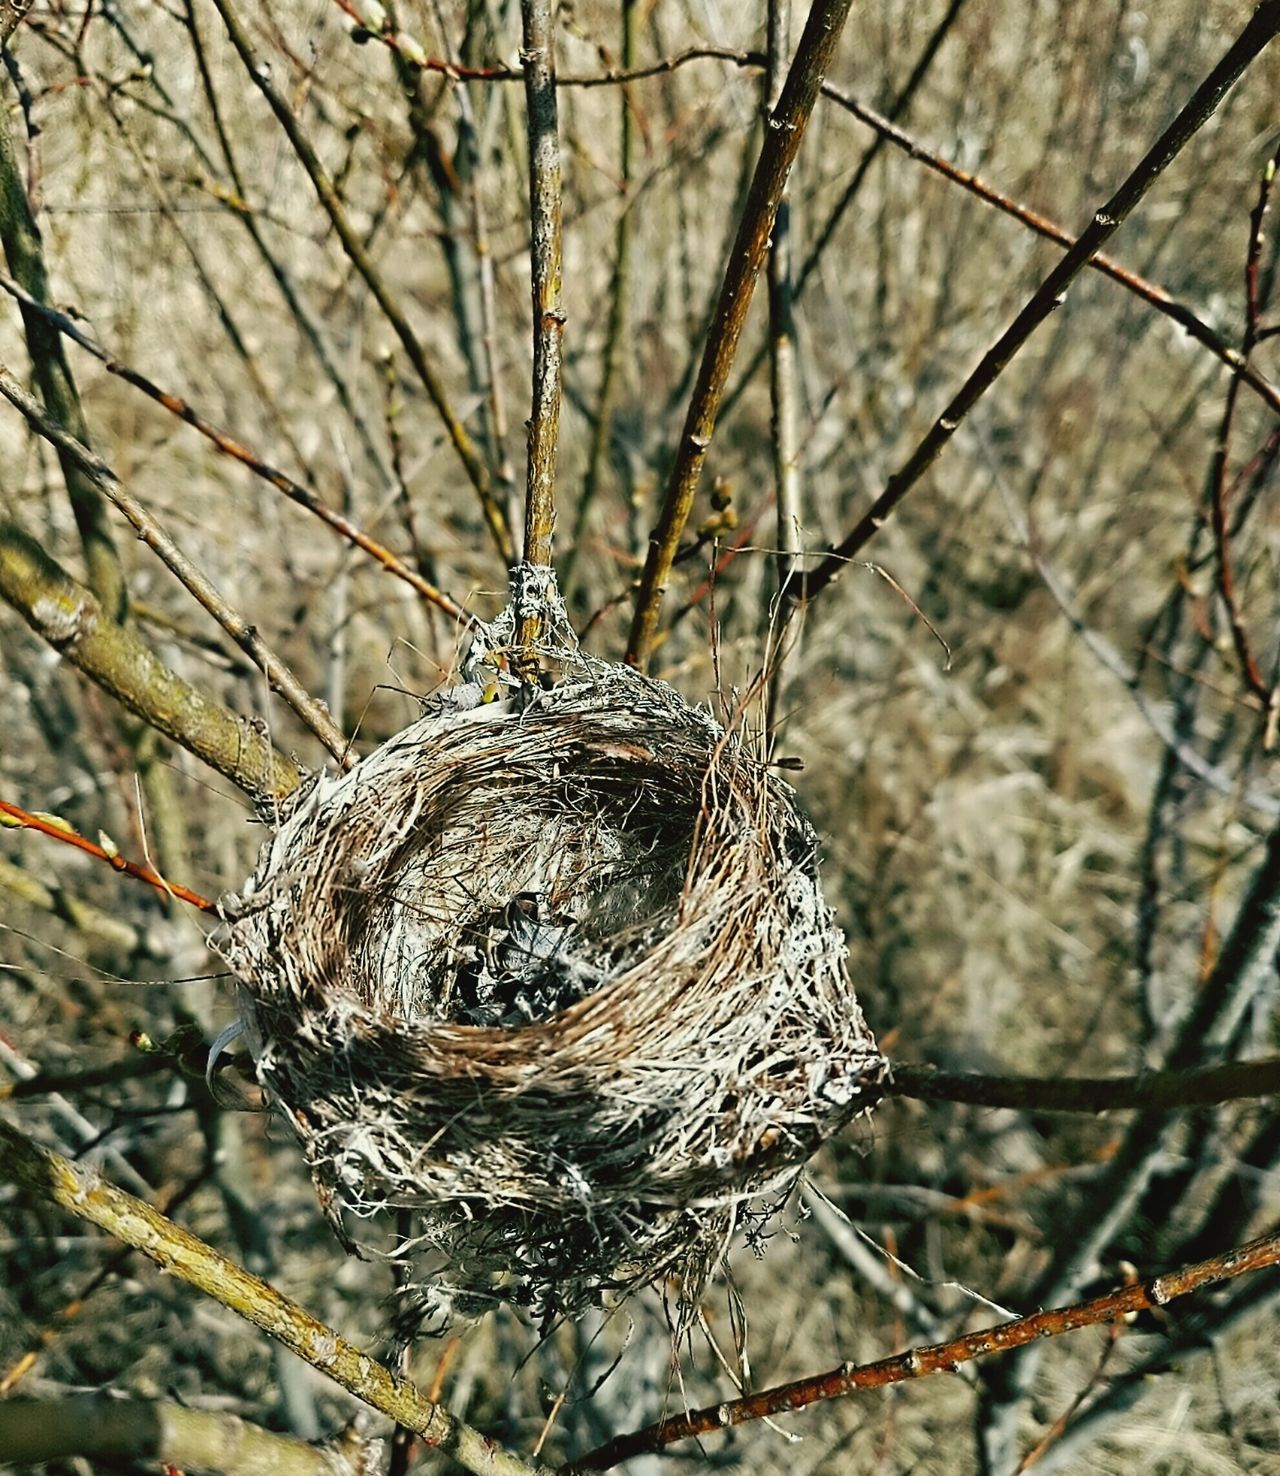 Prime Rural real-estate available for immediate occupancy... Vacant Nest Nid Empty Nest Flew The Coop Bird HouseDried Leaves Bare Tree Branches Nature's Diversities Home Is Where The Art Is Place Of Heart